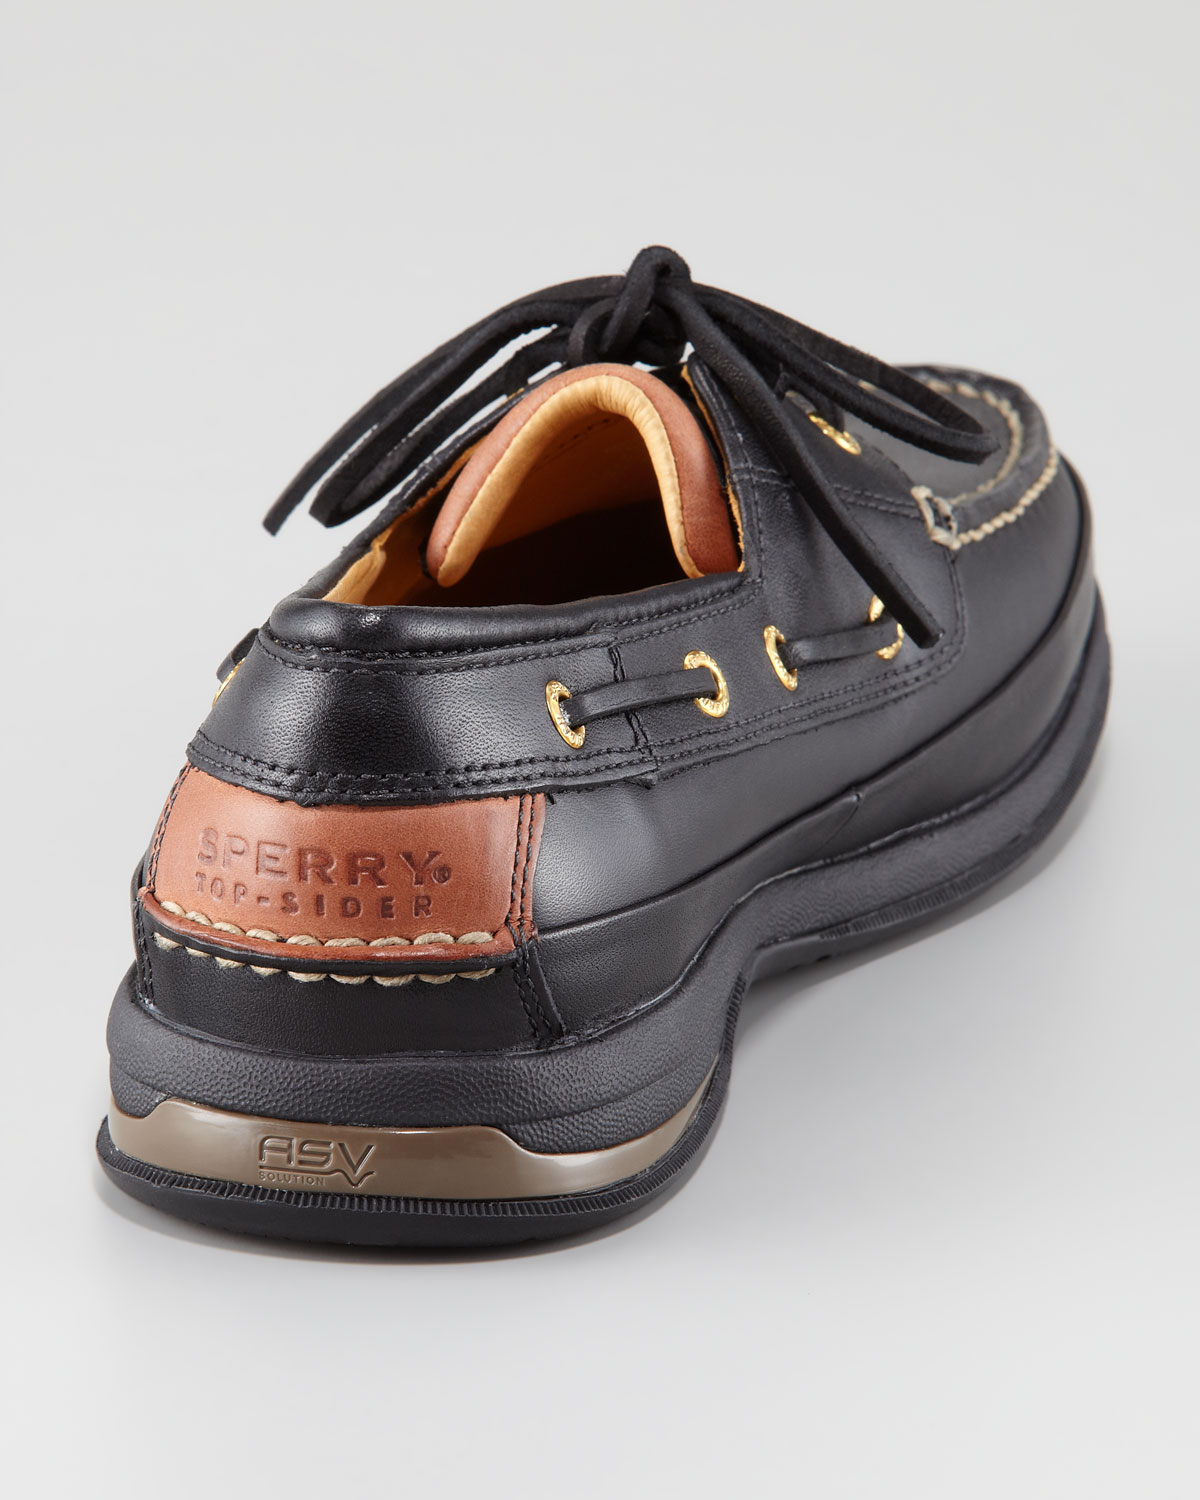 Lyst Sperry Top Sider Gold Cup Asv Two Eye Boat Shoe In